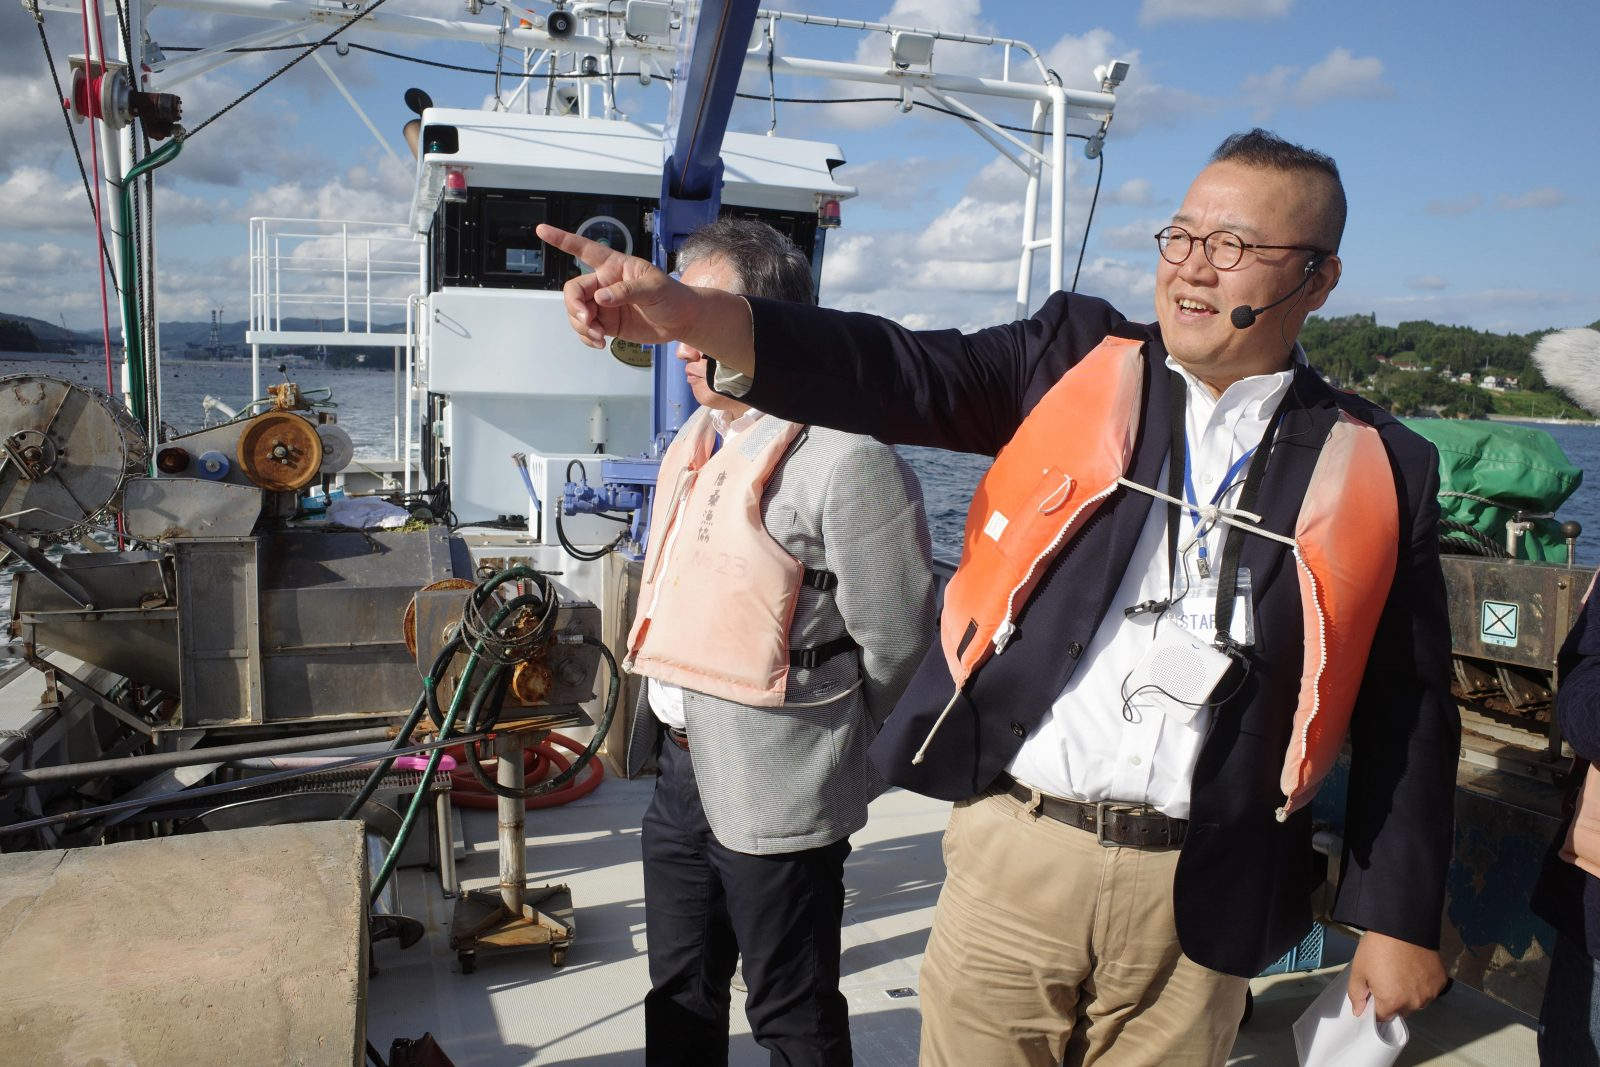 Cafe owner Yasutada Onodera showing visitors around Kesennuma